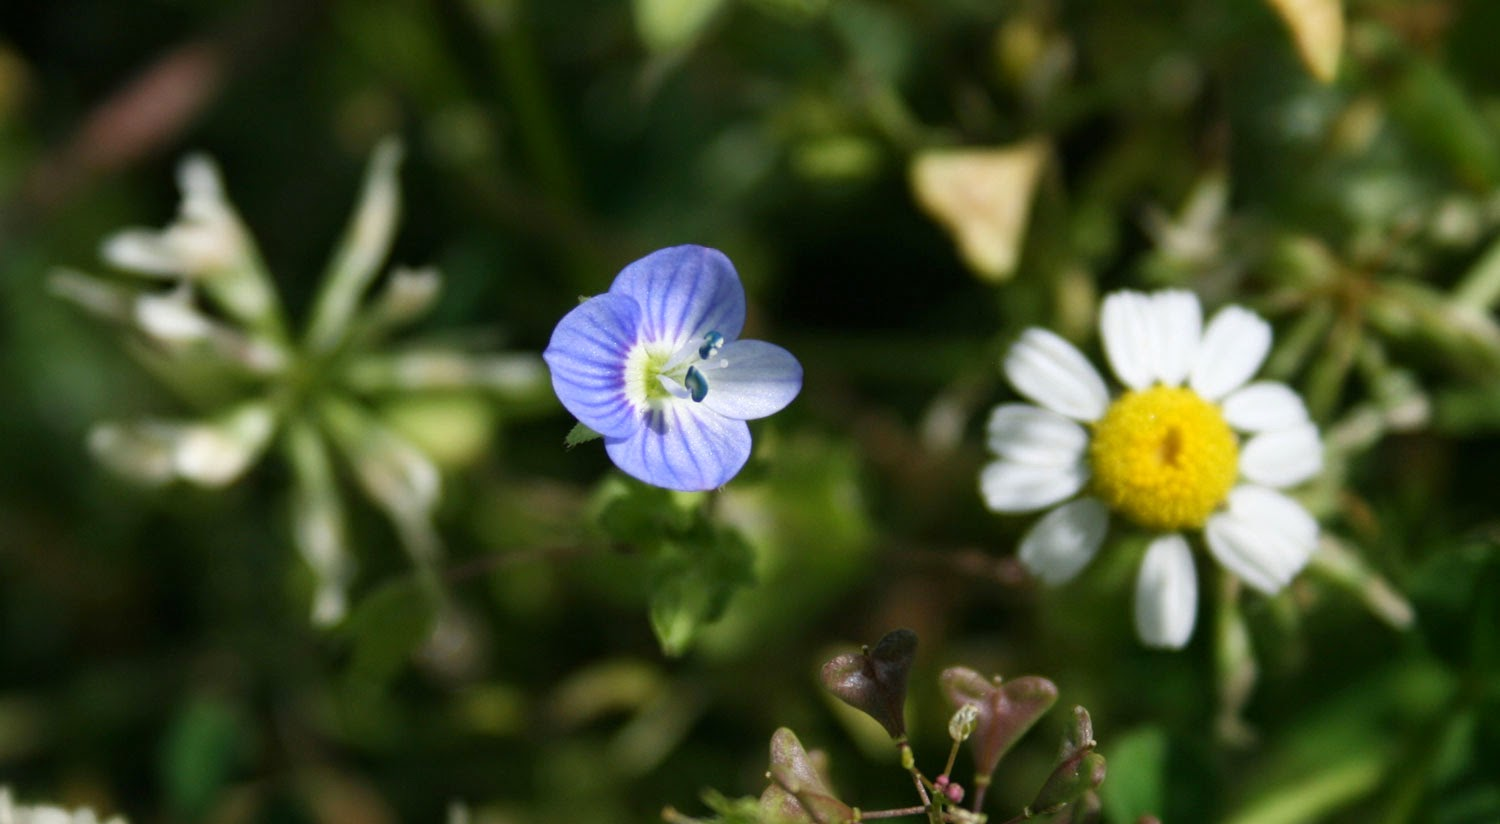 A daisy and a tiny blue flower